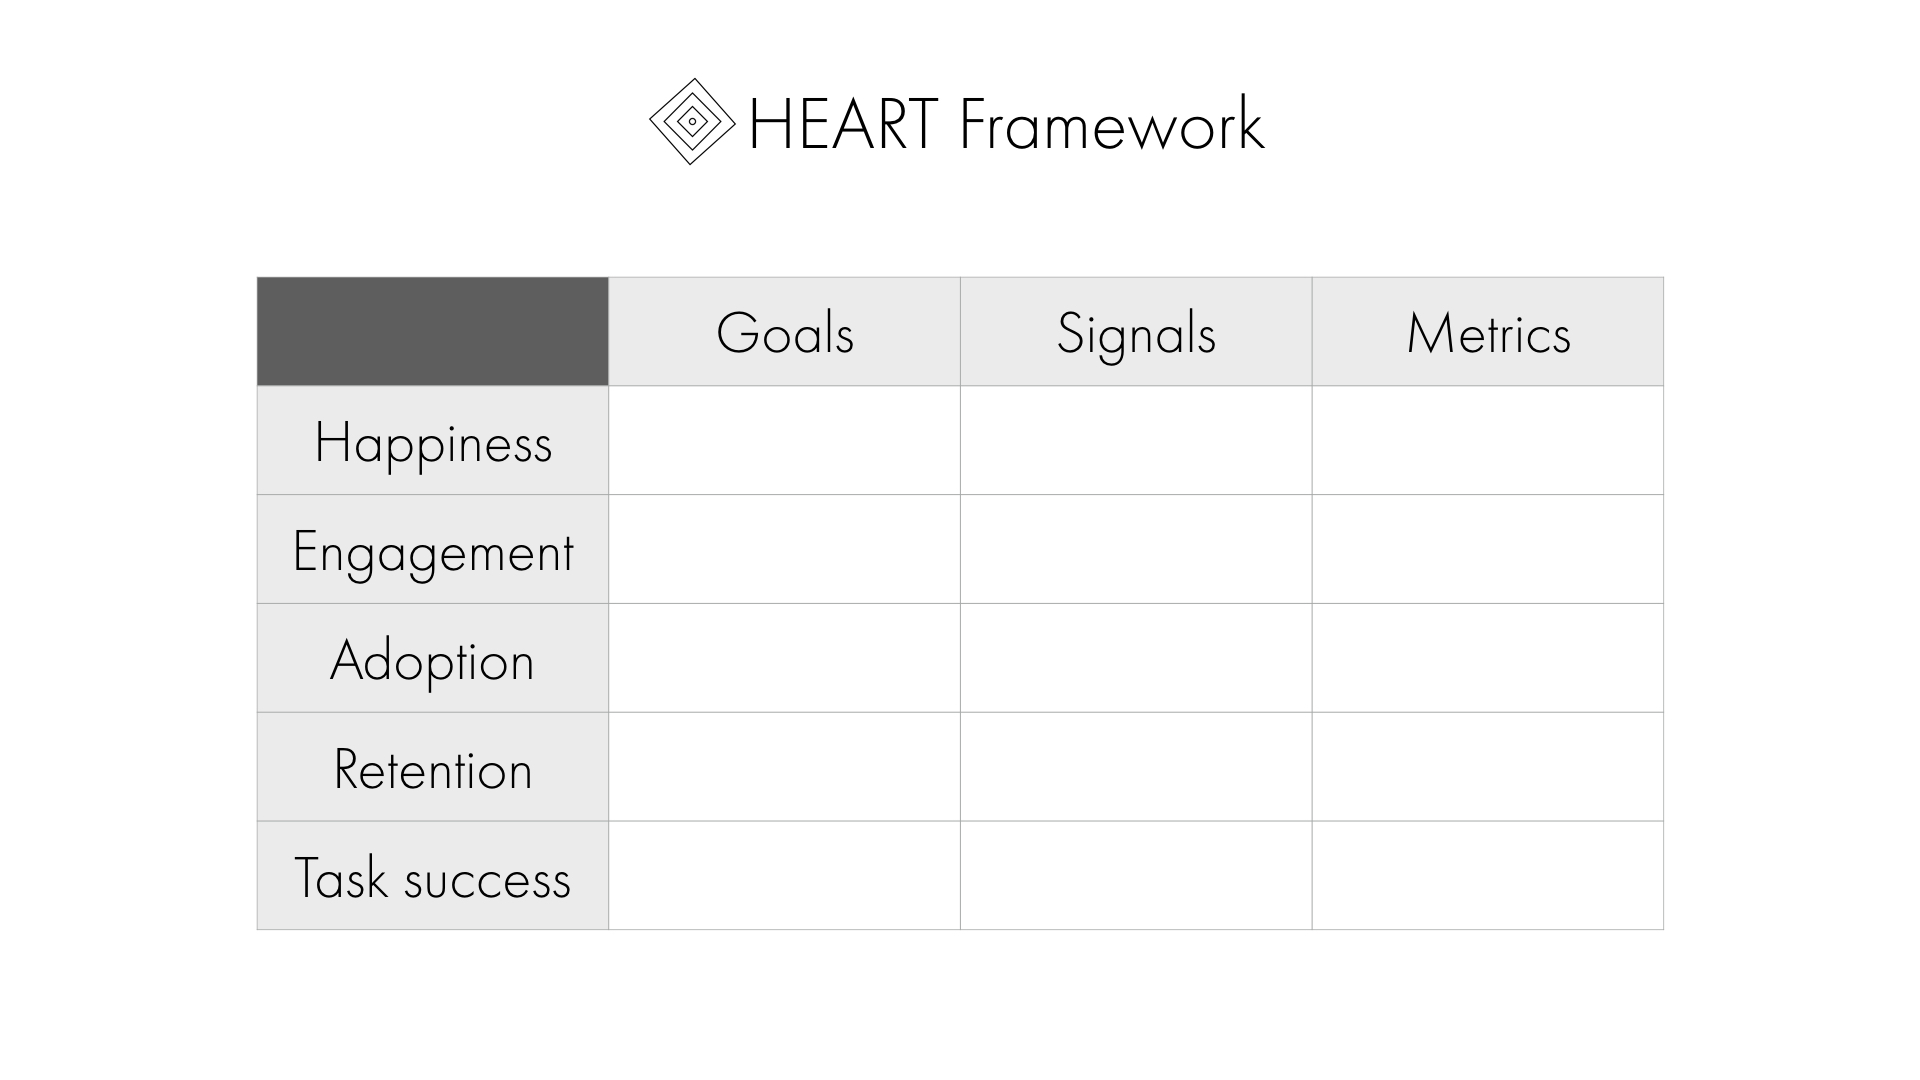 HEART Framework Dashboard